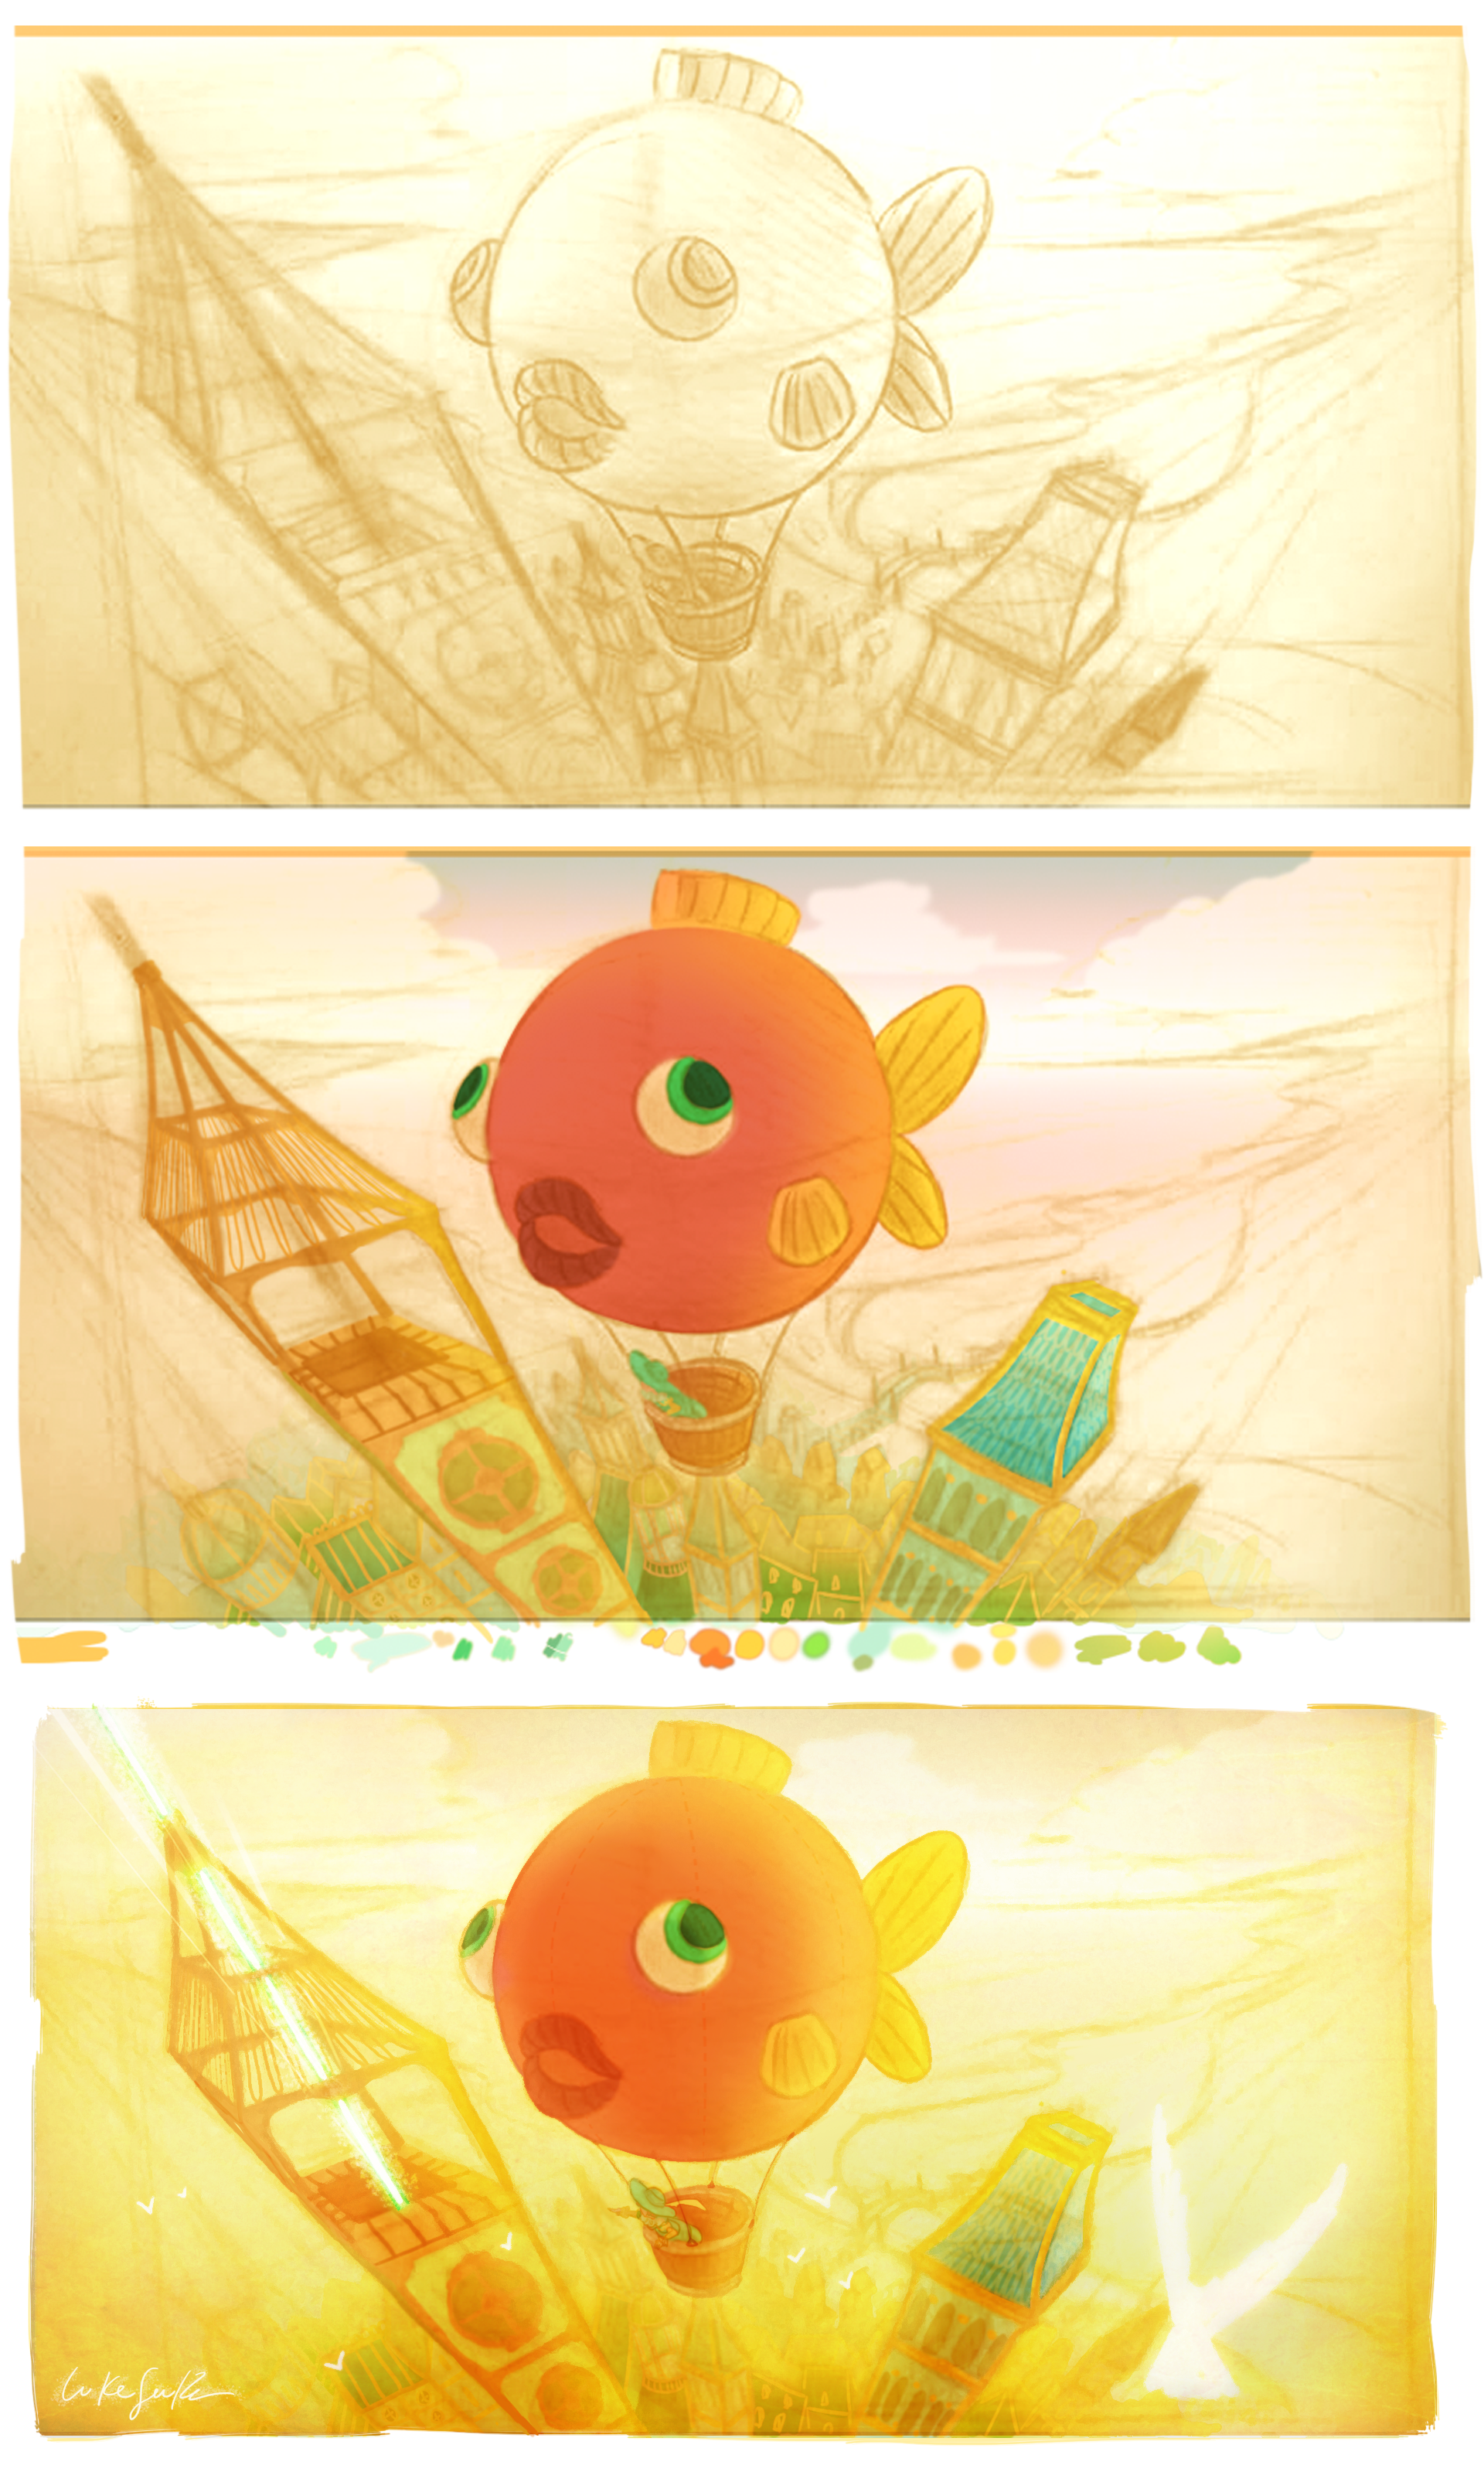 concept for an illustrated book